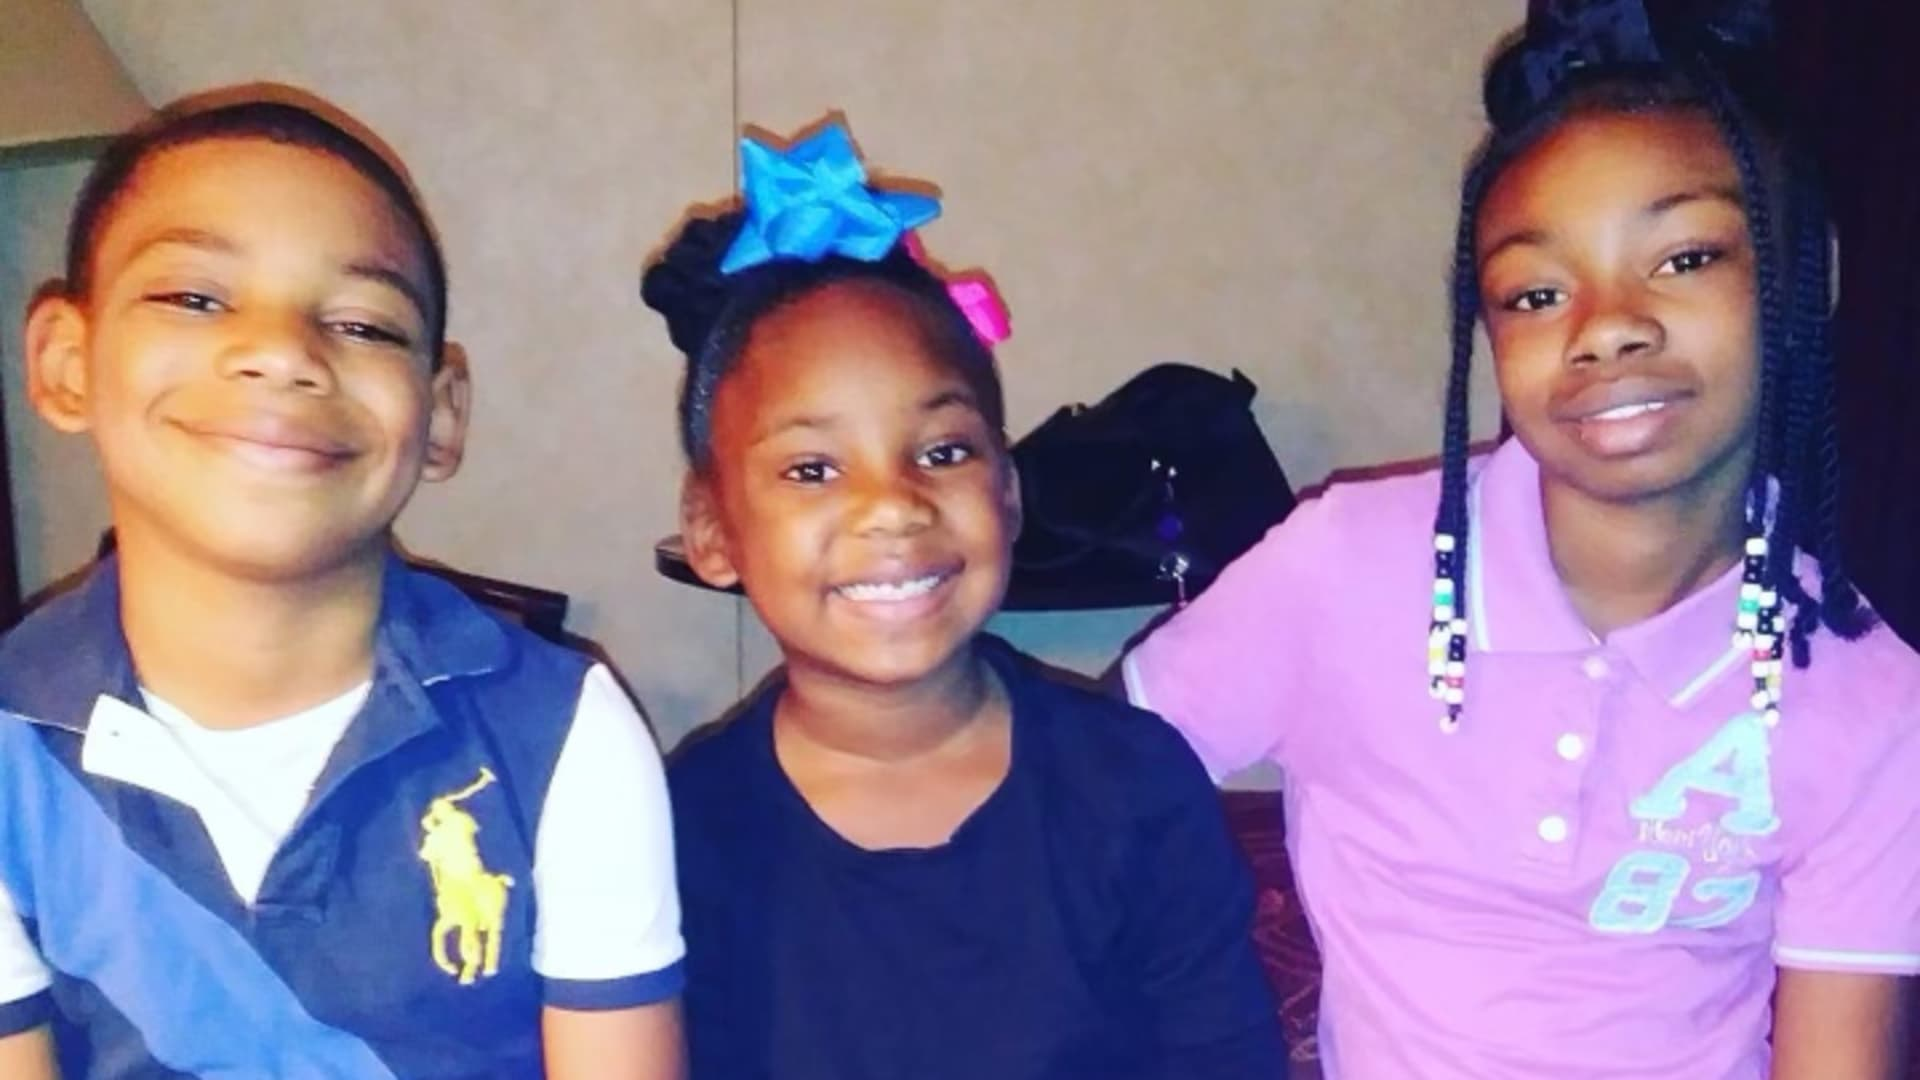 Sierra Graves' three children (from left to right): Jahsiah, 10, and Destiny, 7, and Morriyah, 12.